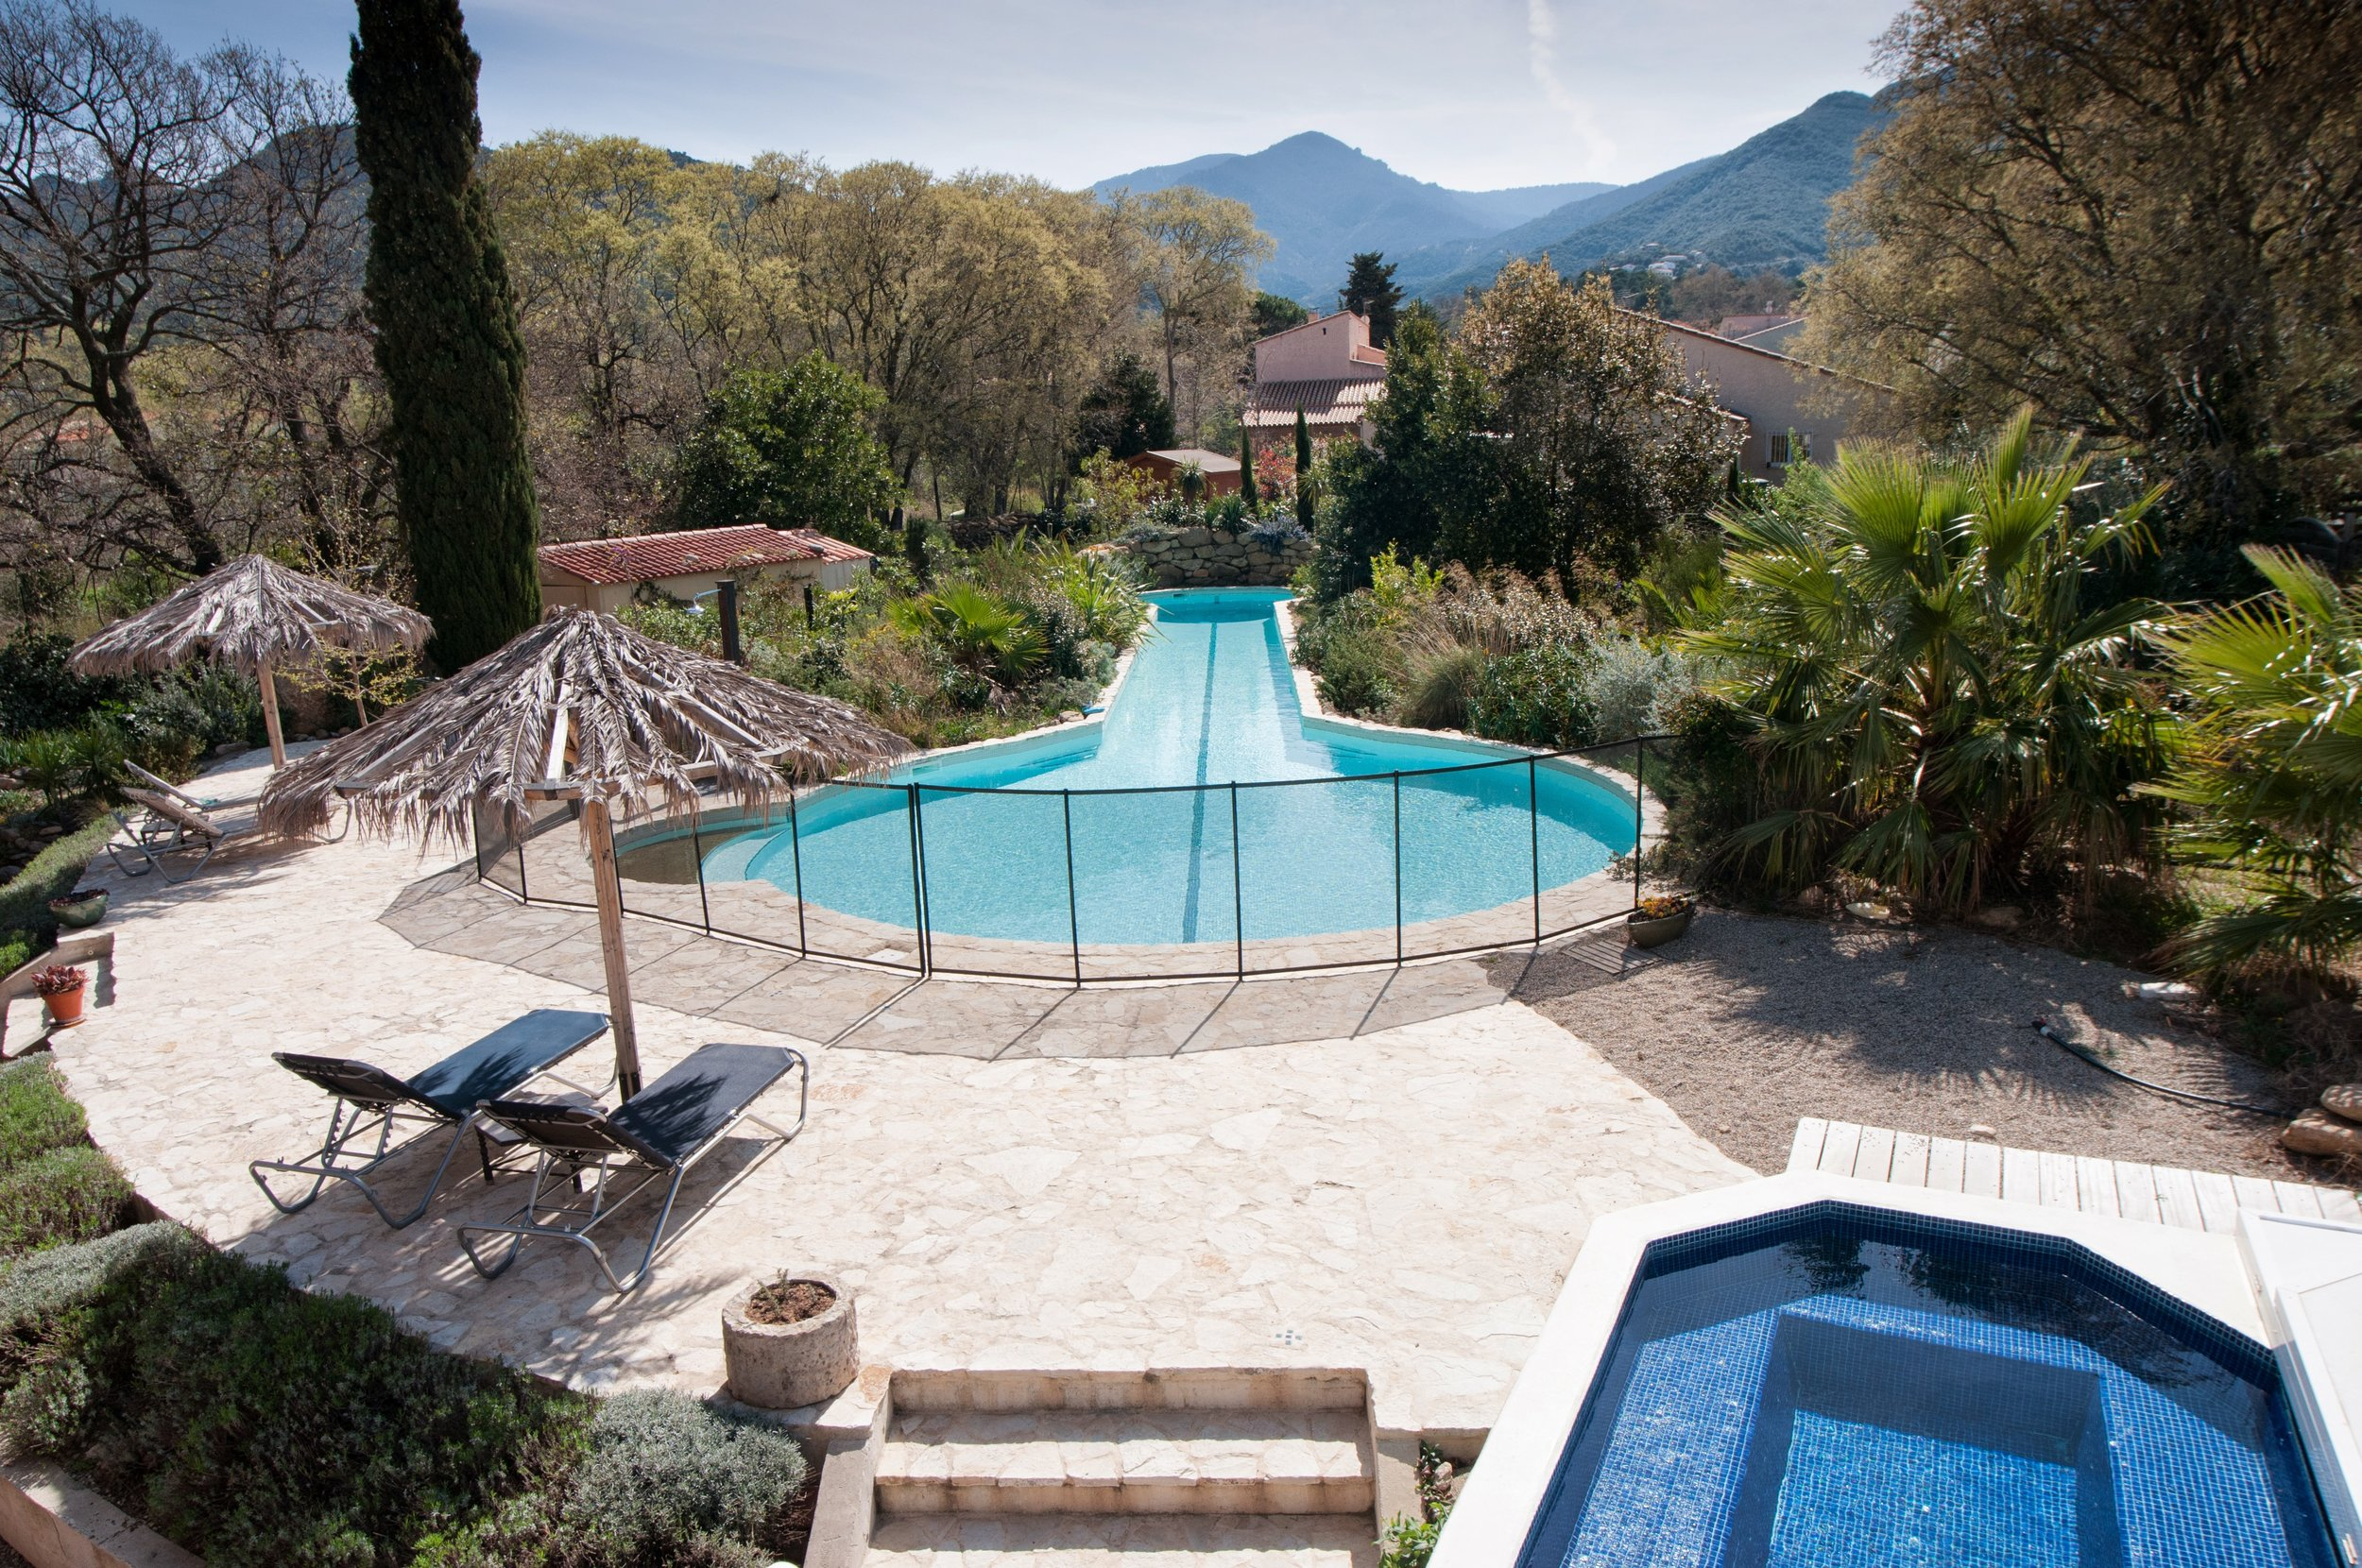 Pool, hot tub and sun loungers; view of the Alberes mountains beyond